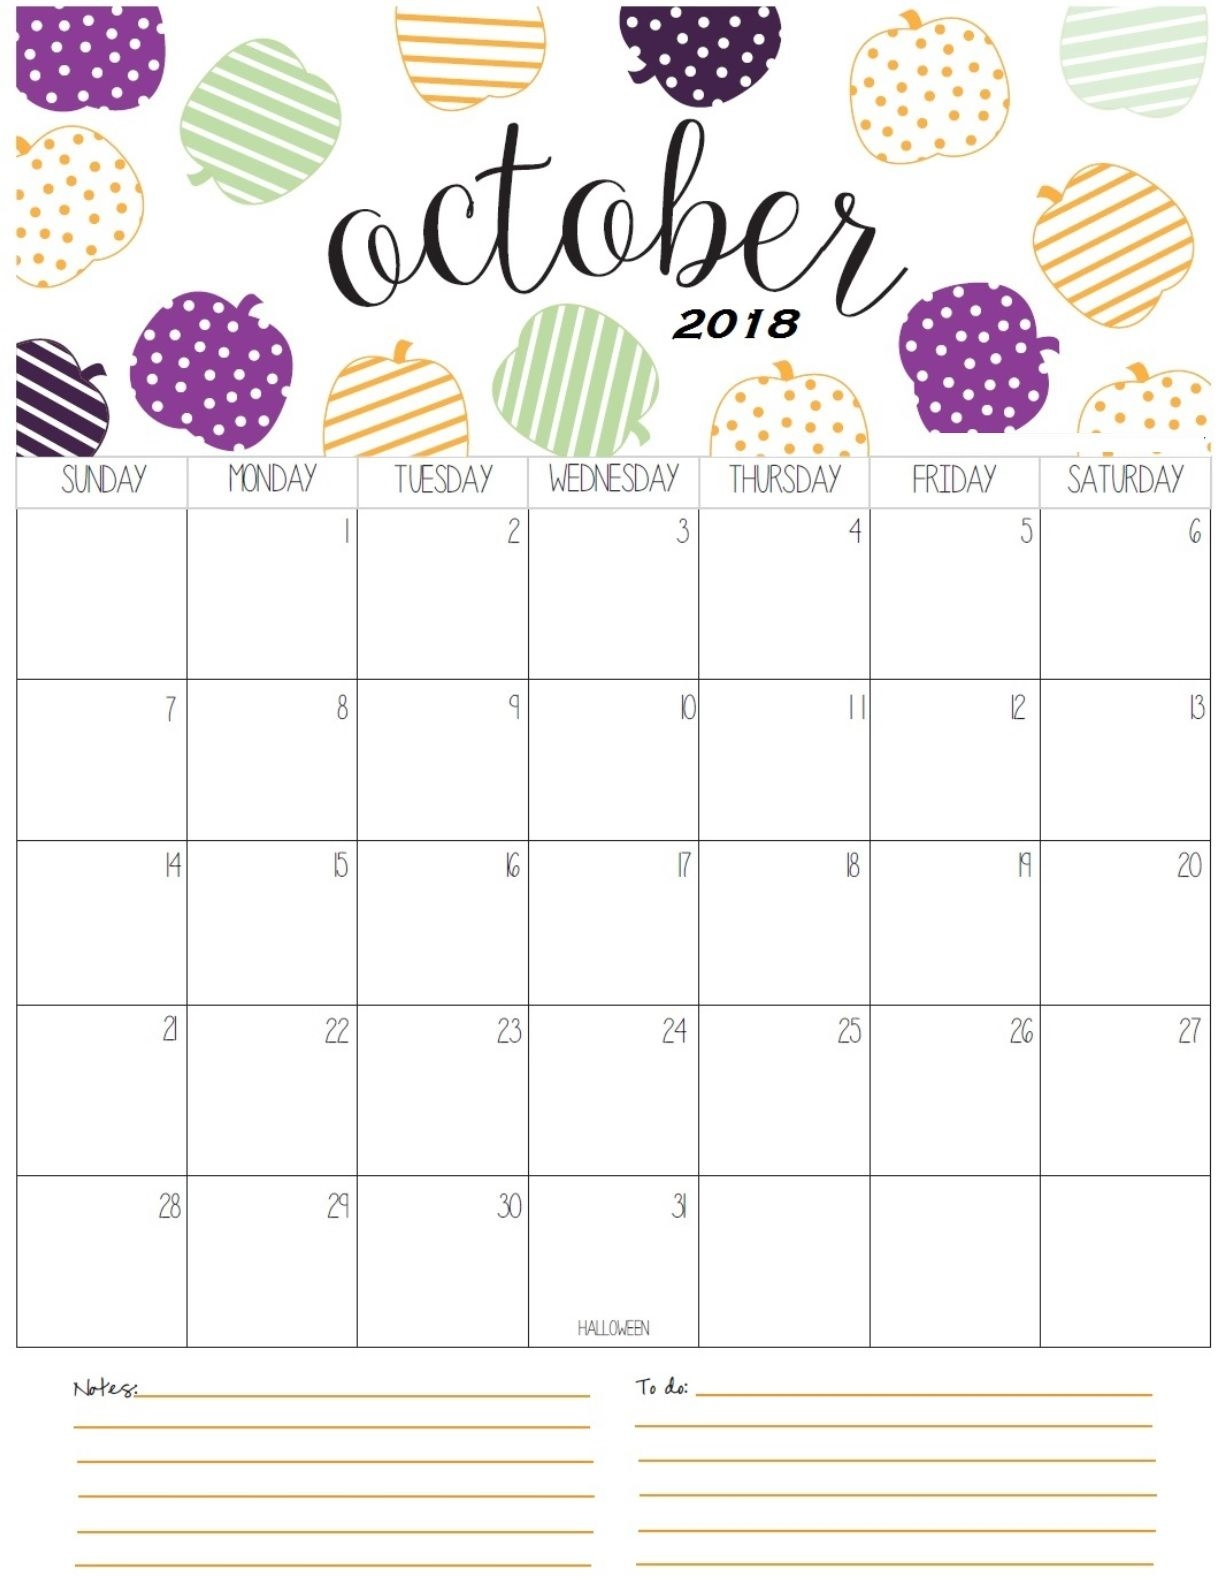 cute october 2018 calendar calendar 2018 pinterest planners October 2018 Calendar Printable Template erdferdf